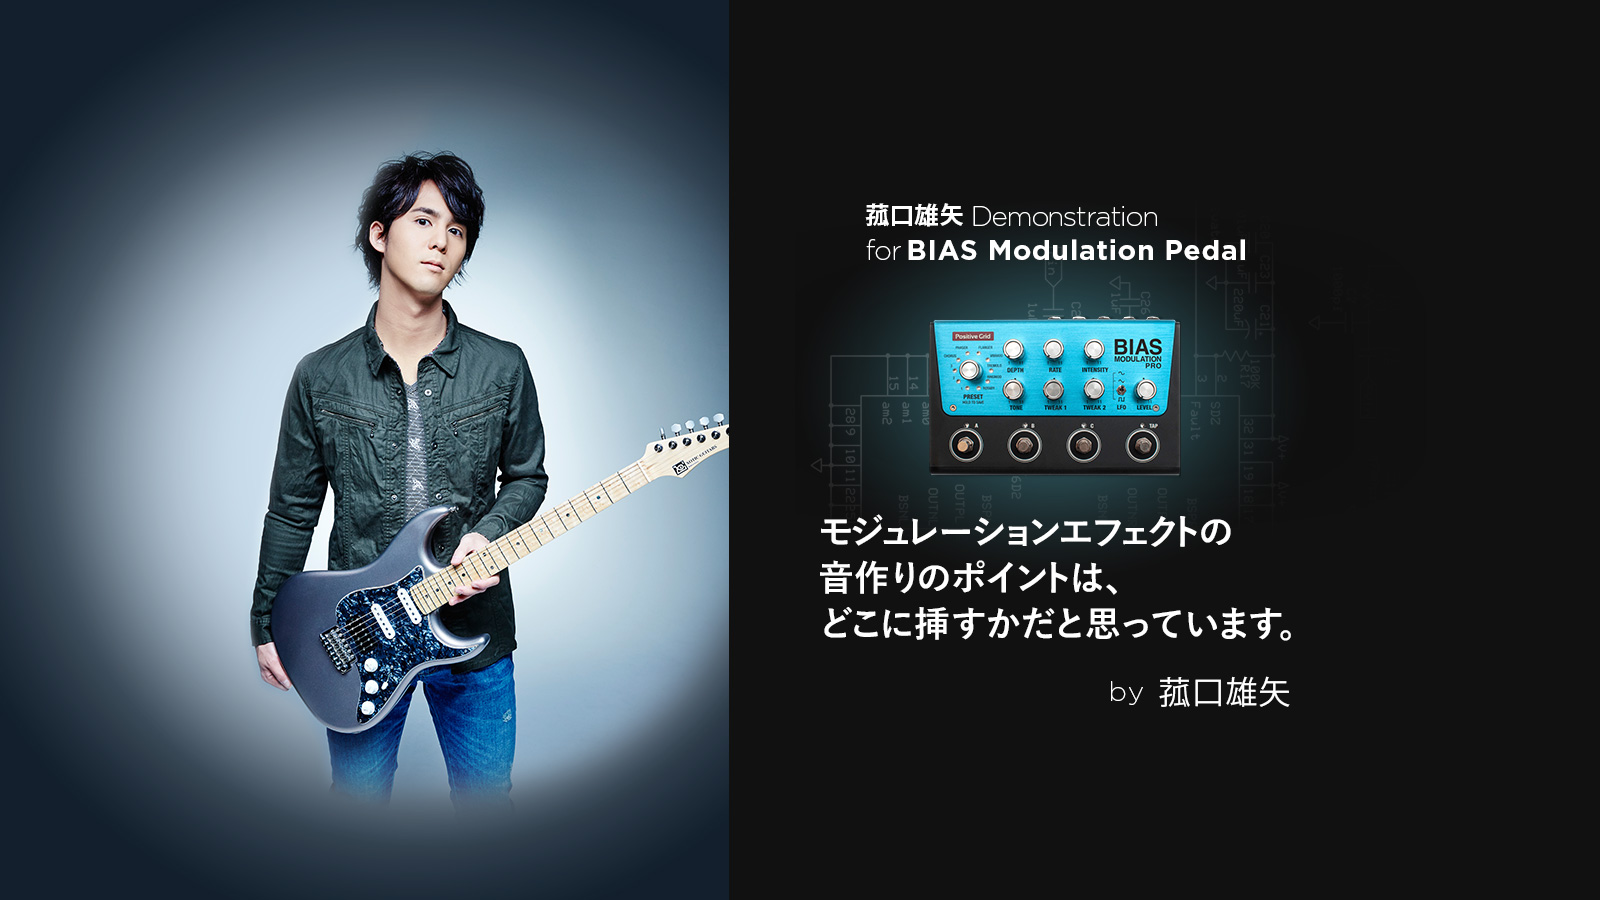 菰口雄矢 Demonstration for BIAS Modulation Pedal